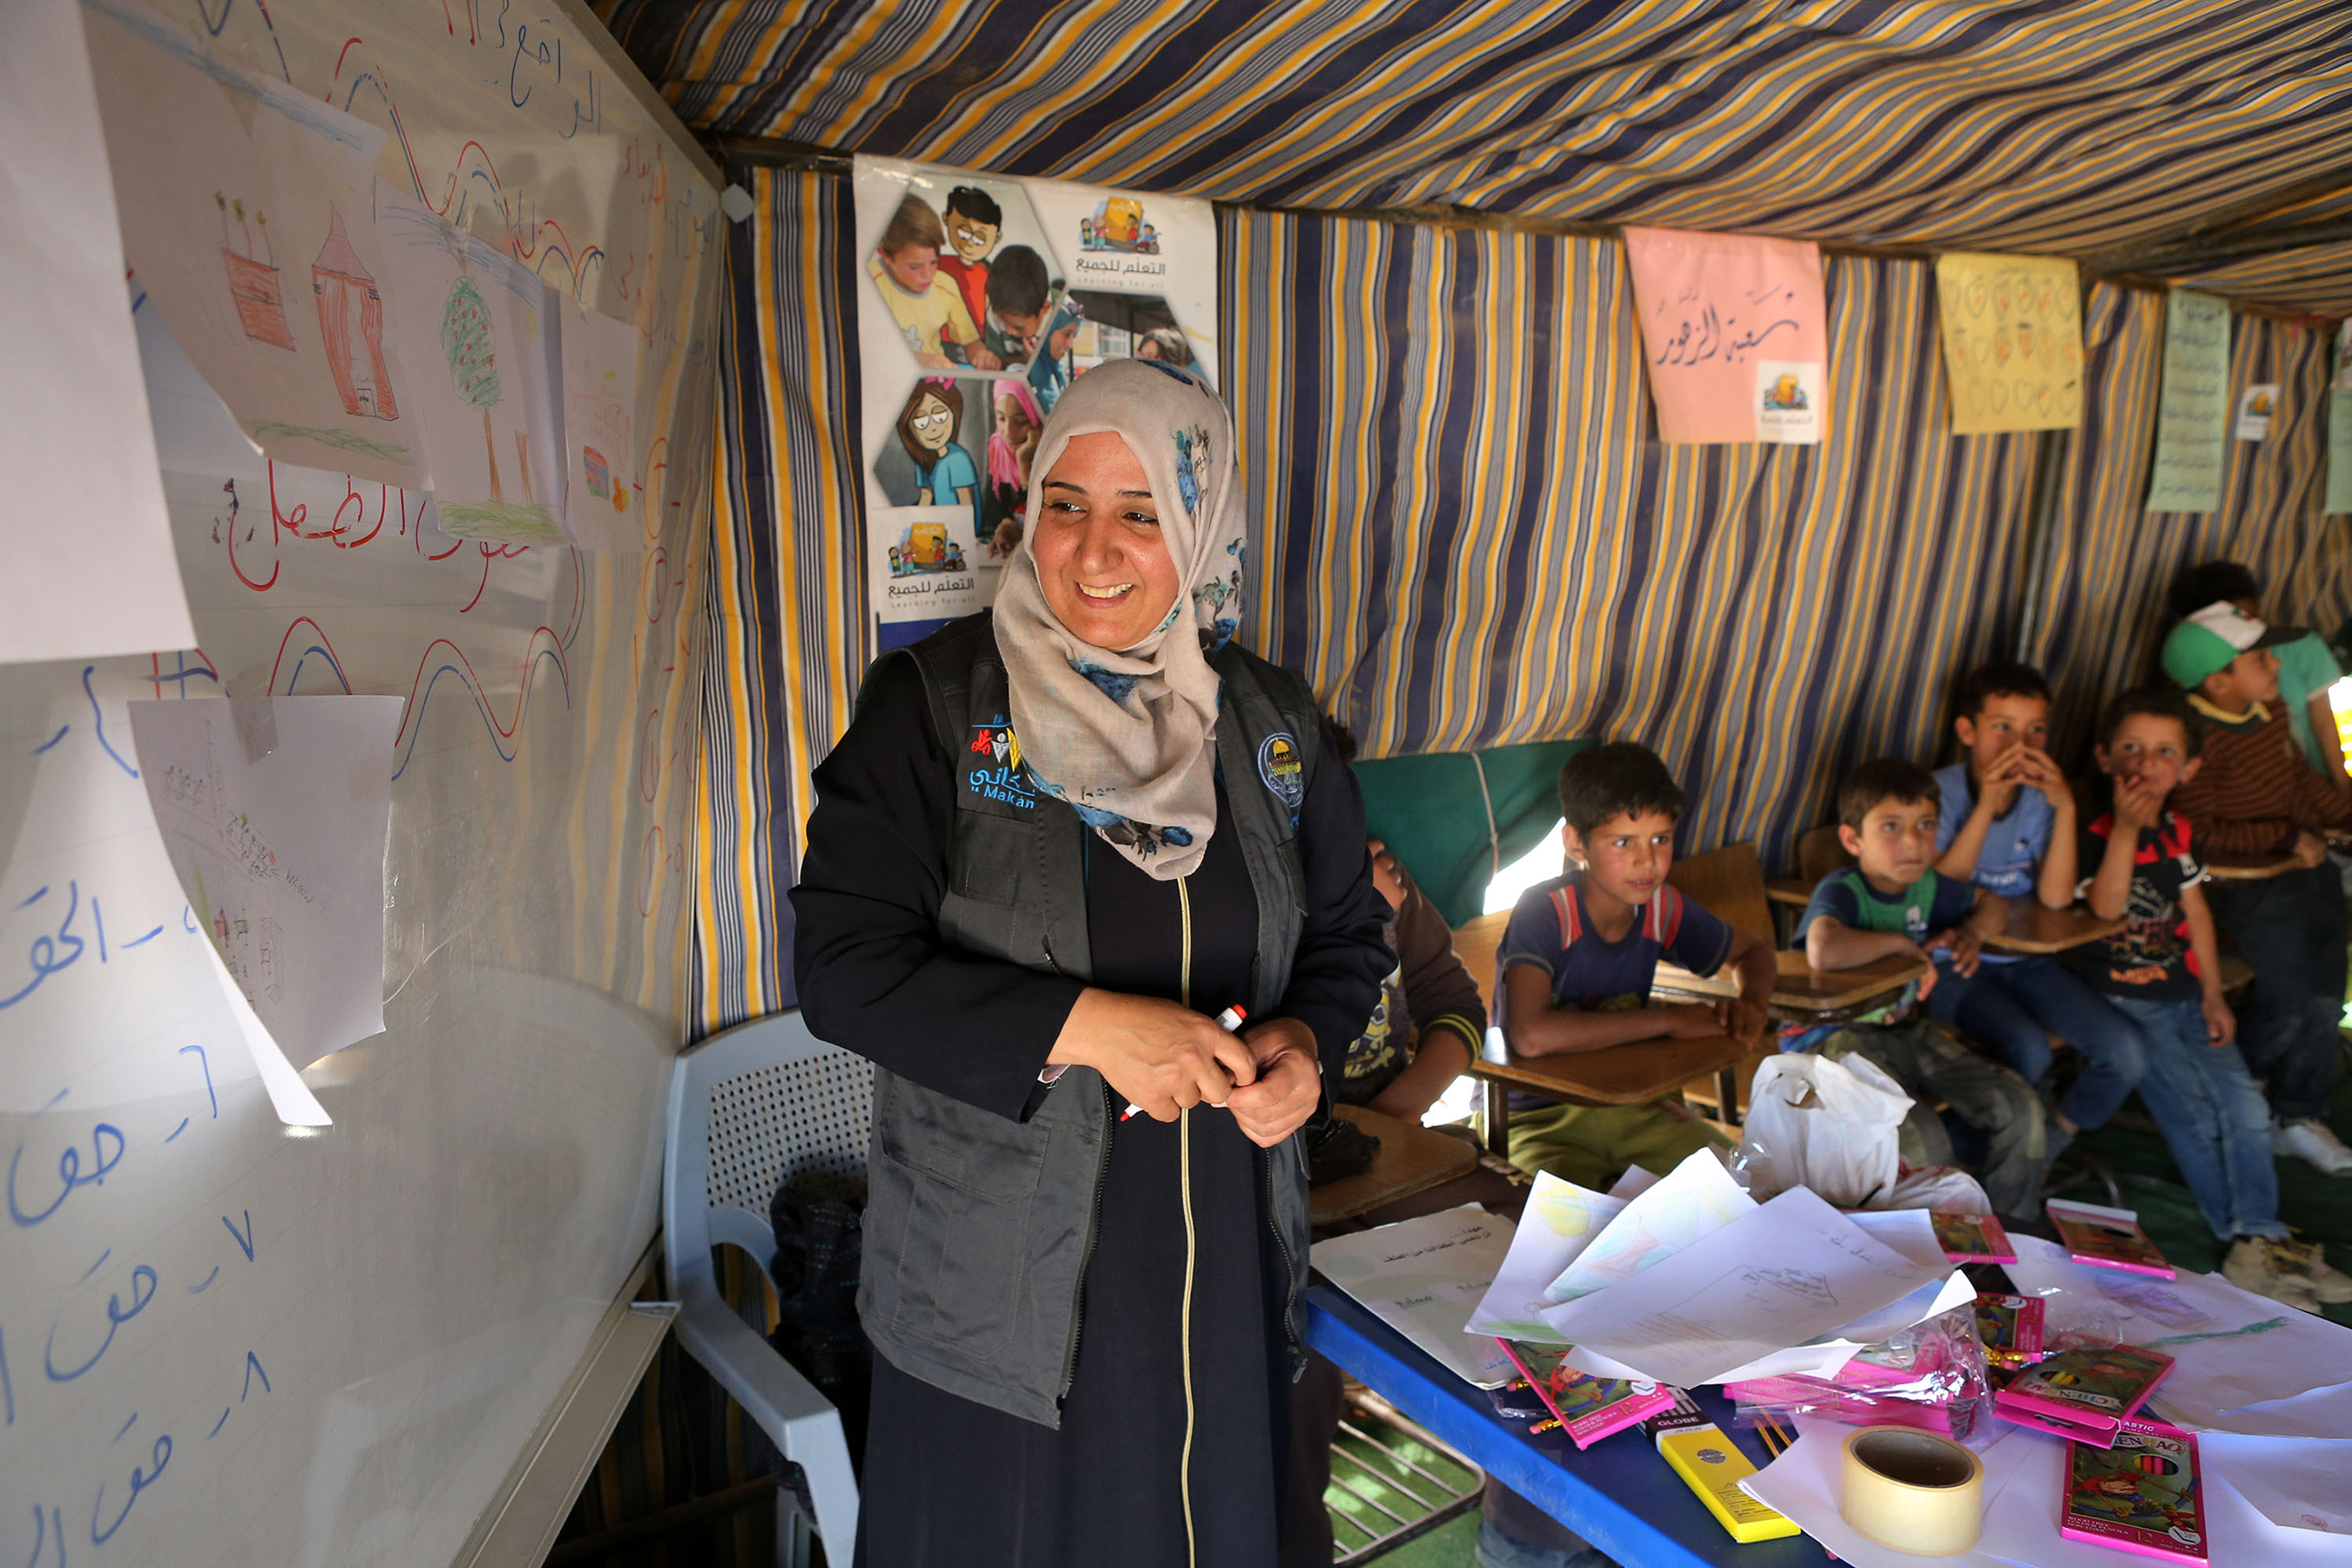 UNICEF provides educational resources and learning opportunities in Child Friendly Spaces | Credit: ©SalahMalkawi